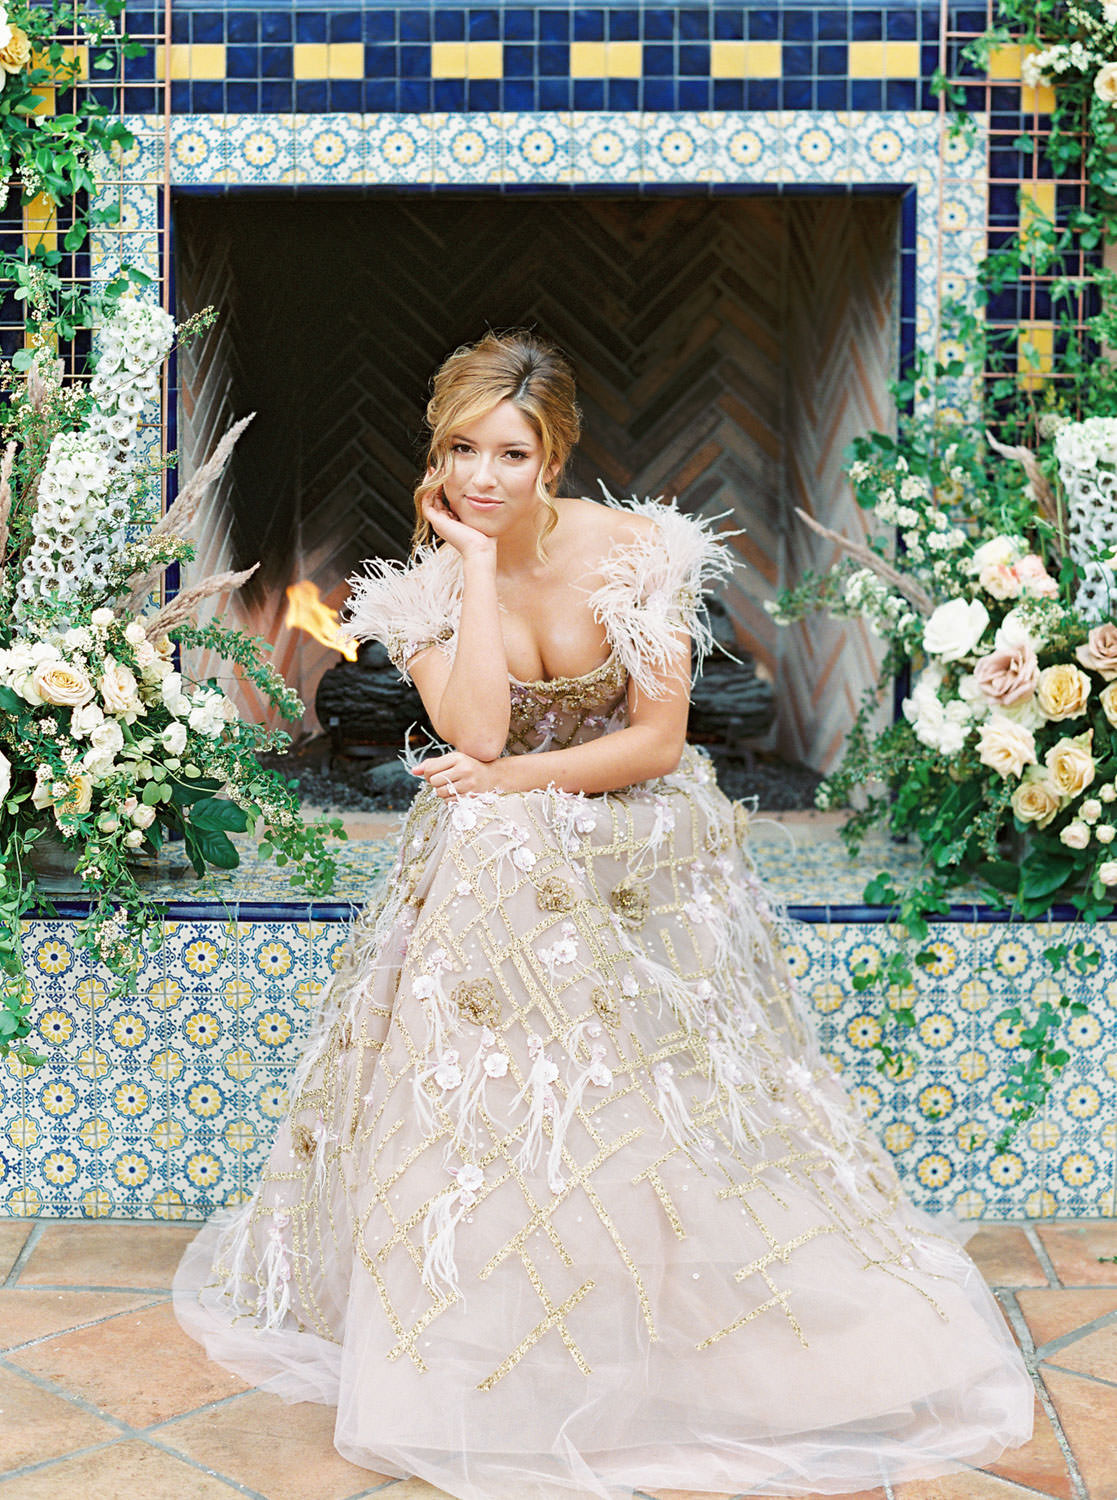 Bride posing in front of pink fireplace with blue and golden tiles for ceremony backdrop adorned with large floral installations. Marchesa couture gown with blush feathers, gold lines, and floral embellishments. Honey and Beekeeper Inspired Wedding on sunrise terrace patio at Rancho Valencia on film by Cavin Elizabeth Photography